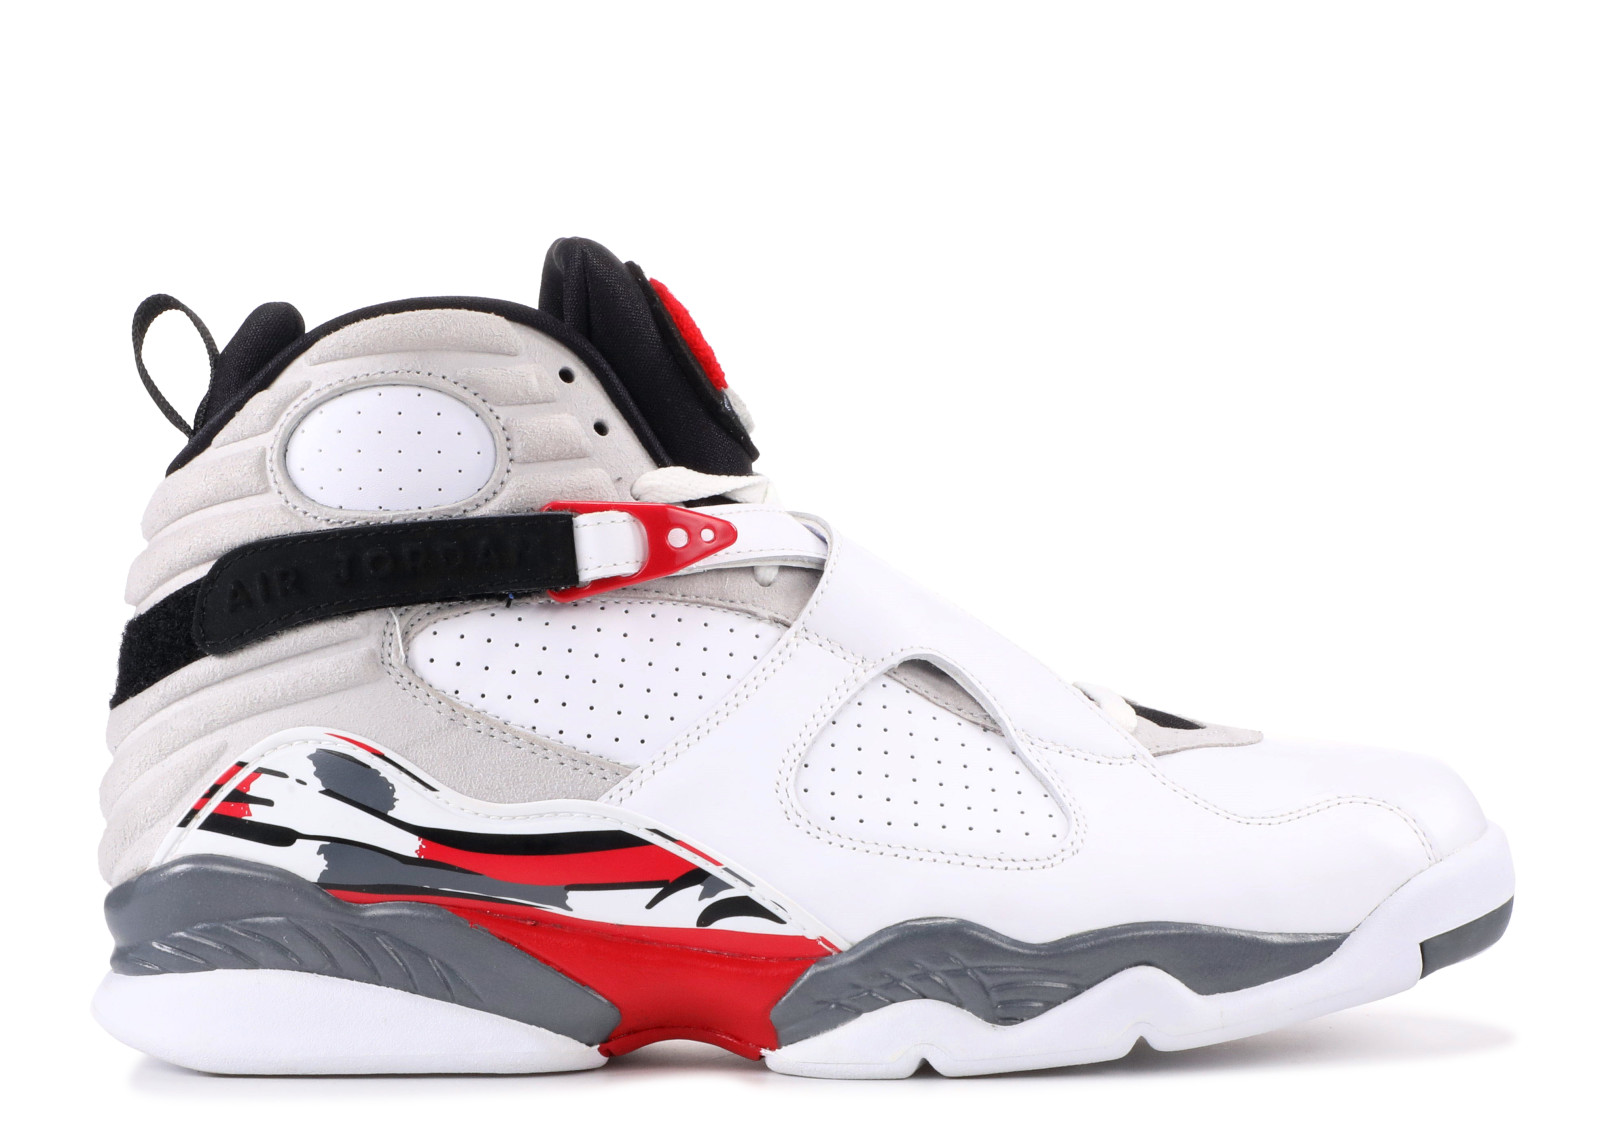 Air Jordan 8 Retro Bugs Bunny Countdown Pack